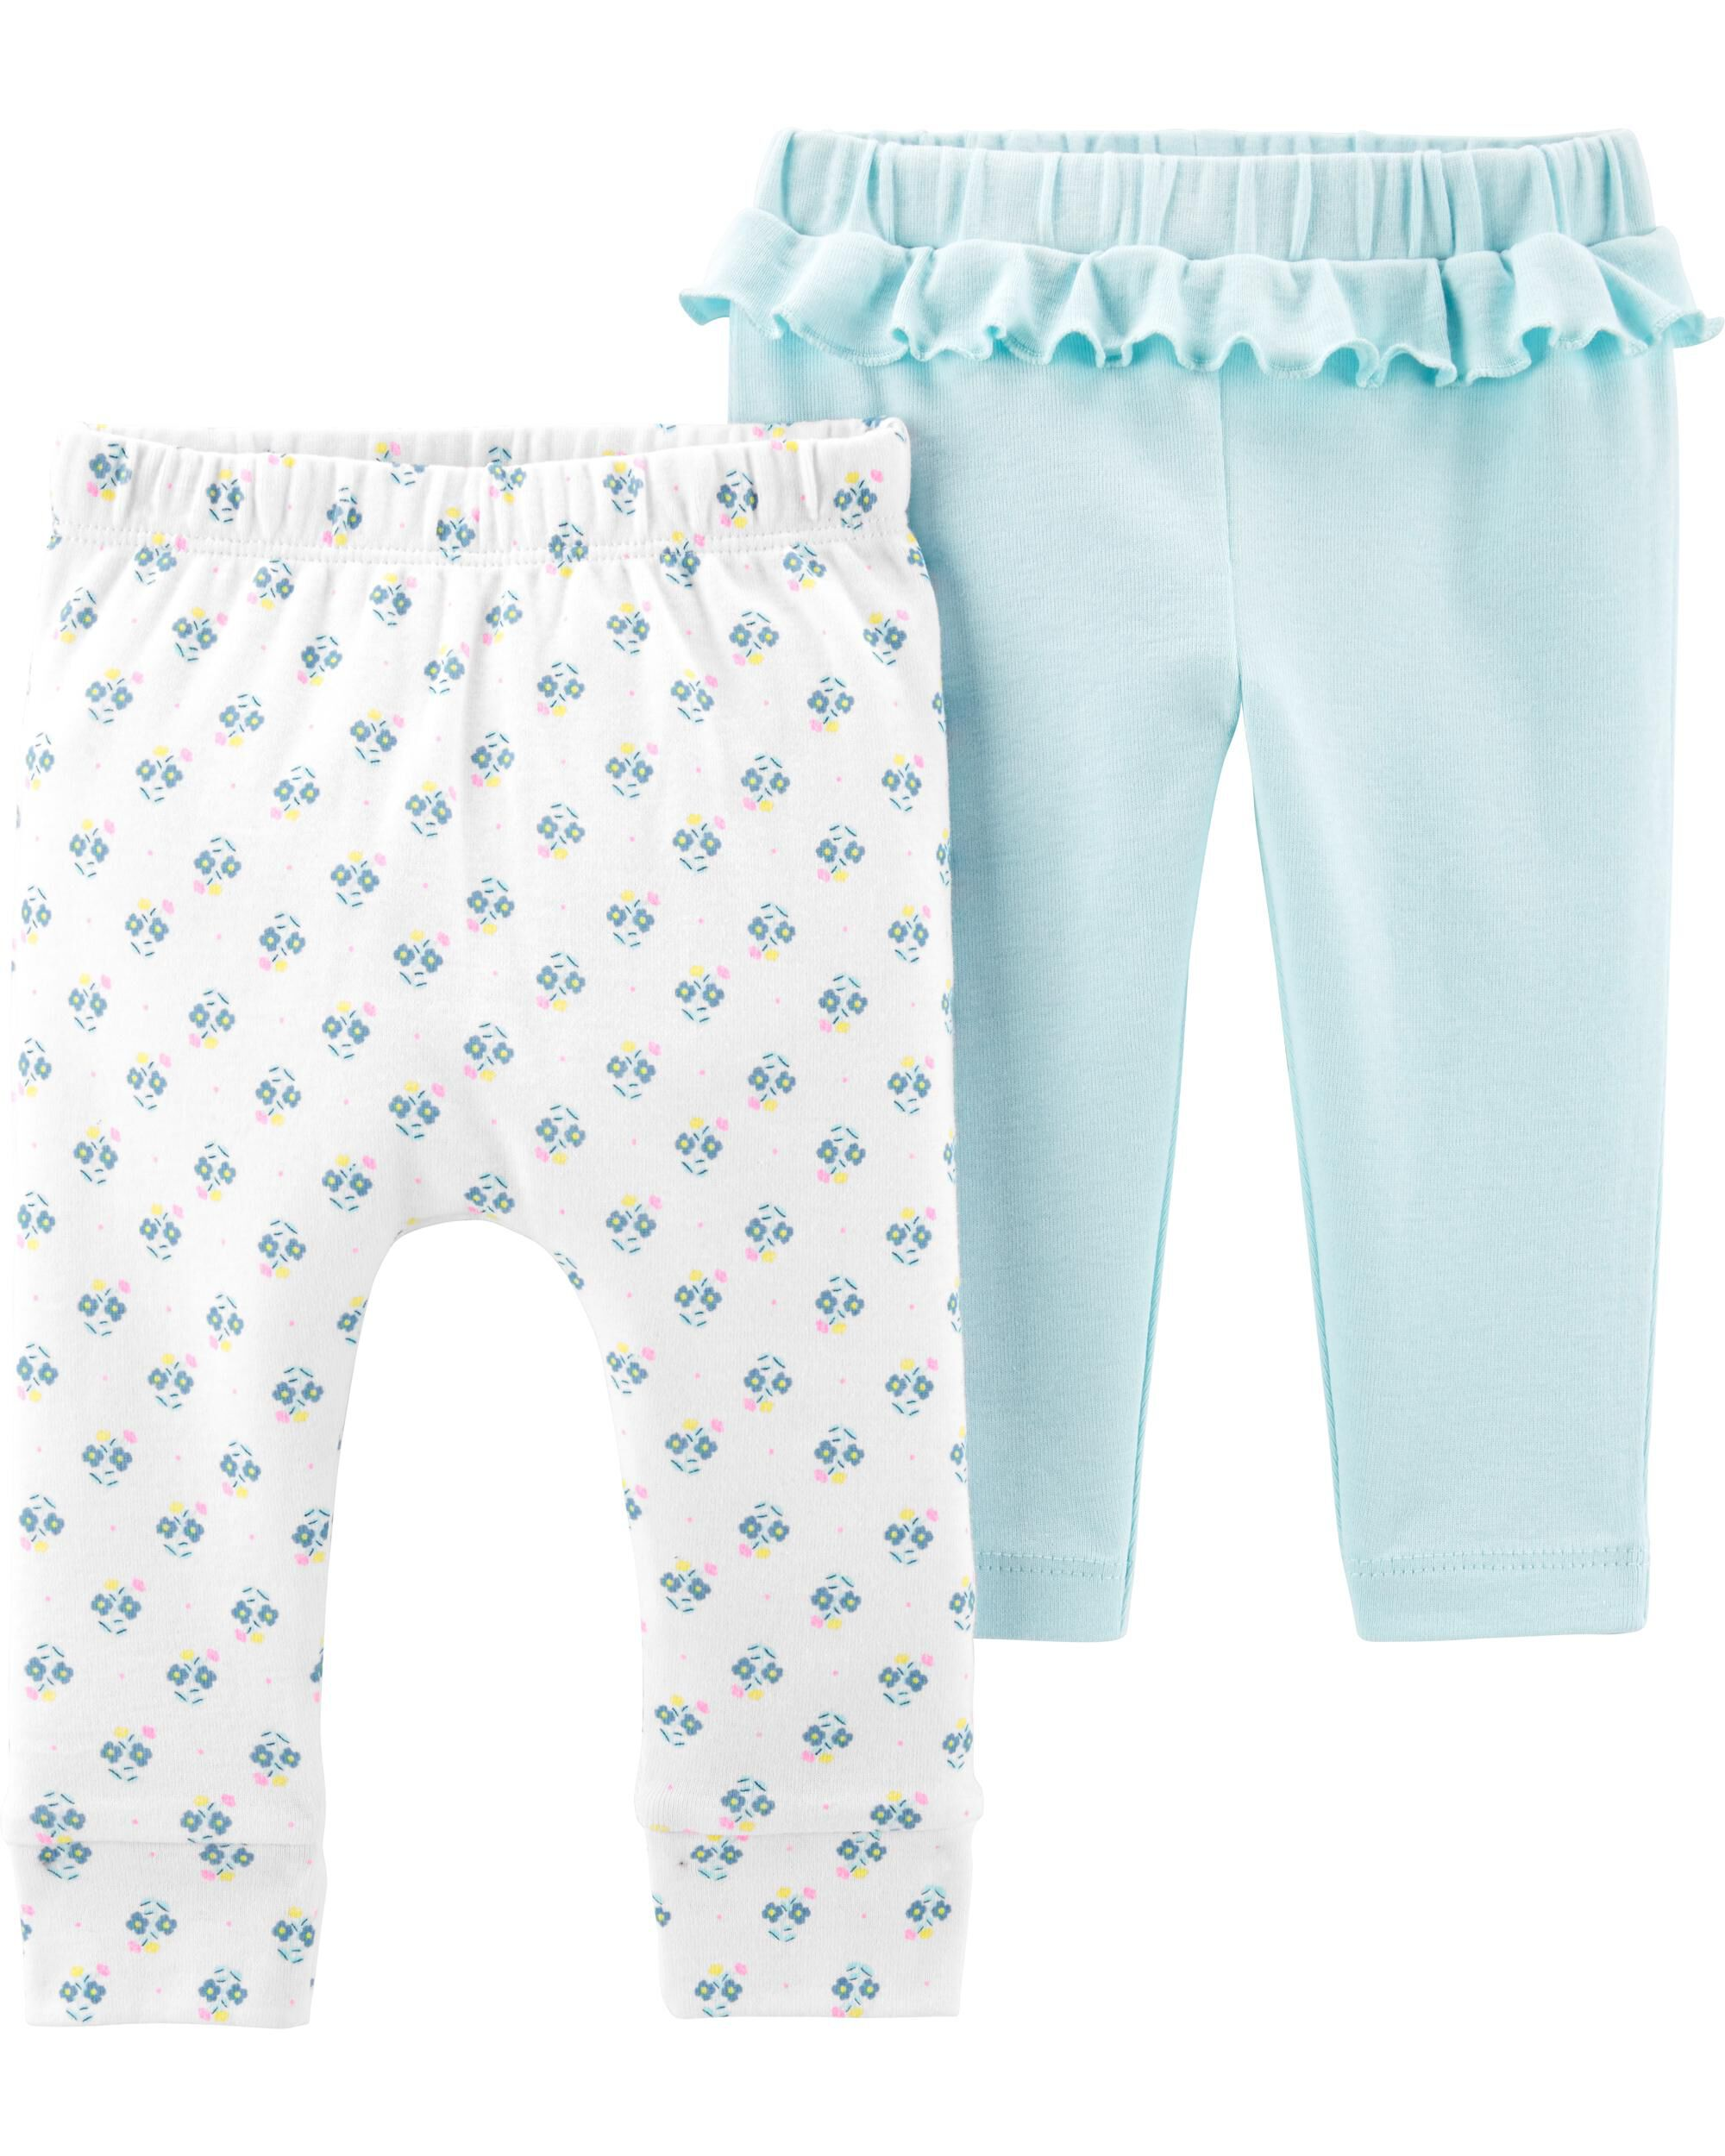 *CLEARANCE* 2-Pack Cotton Pants